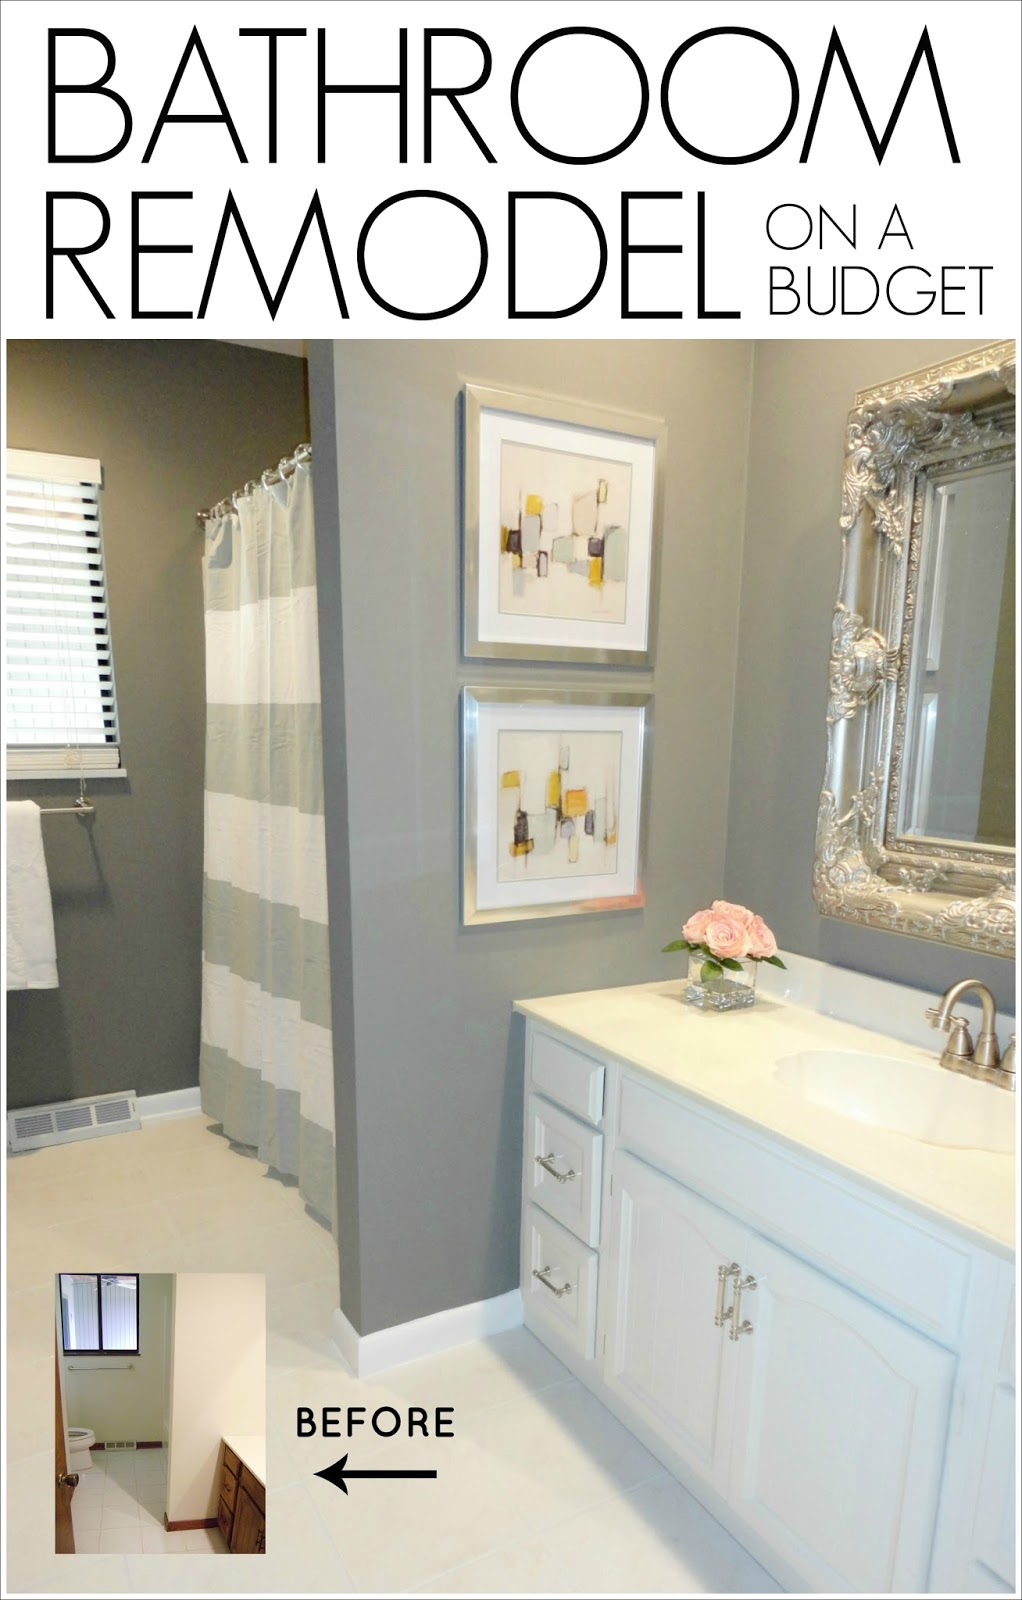 Fancy Livelovediy: Diy Bathroom Remodel On A Budget in Low Cost Bathroom Remodel